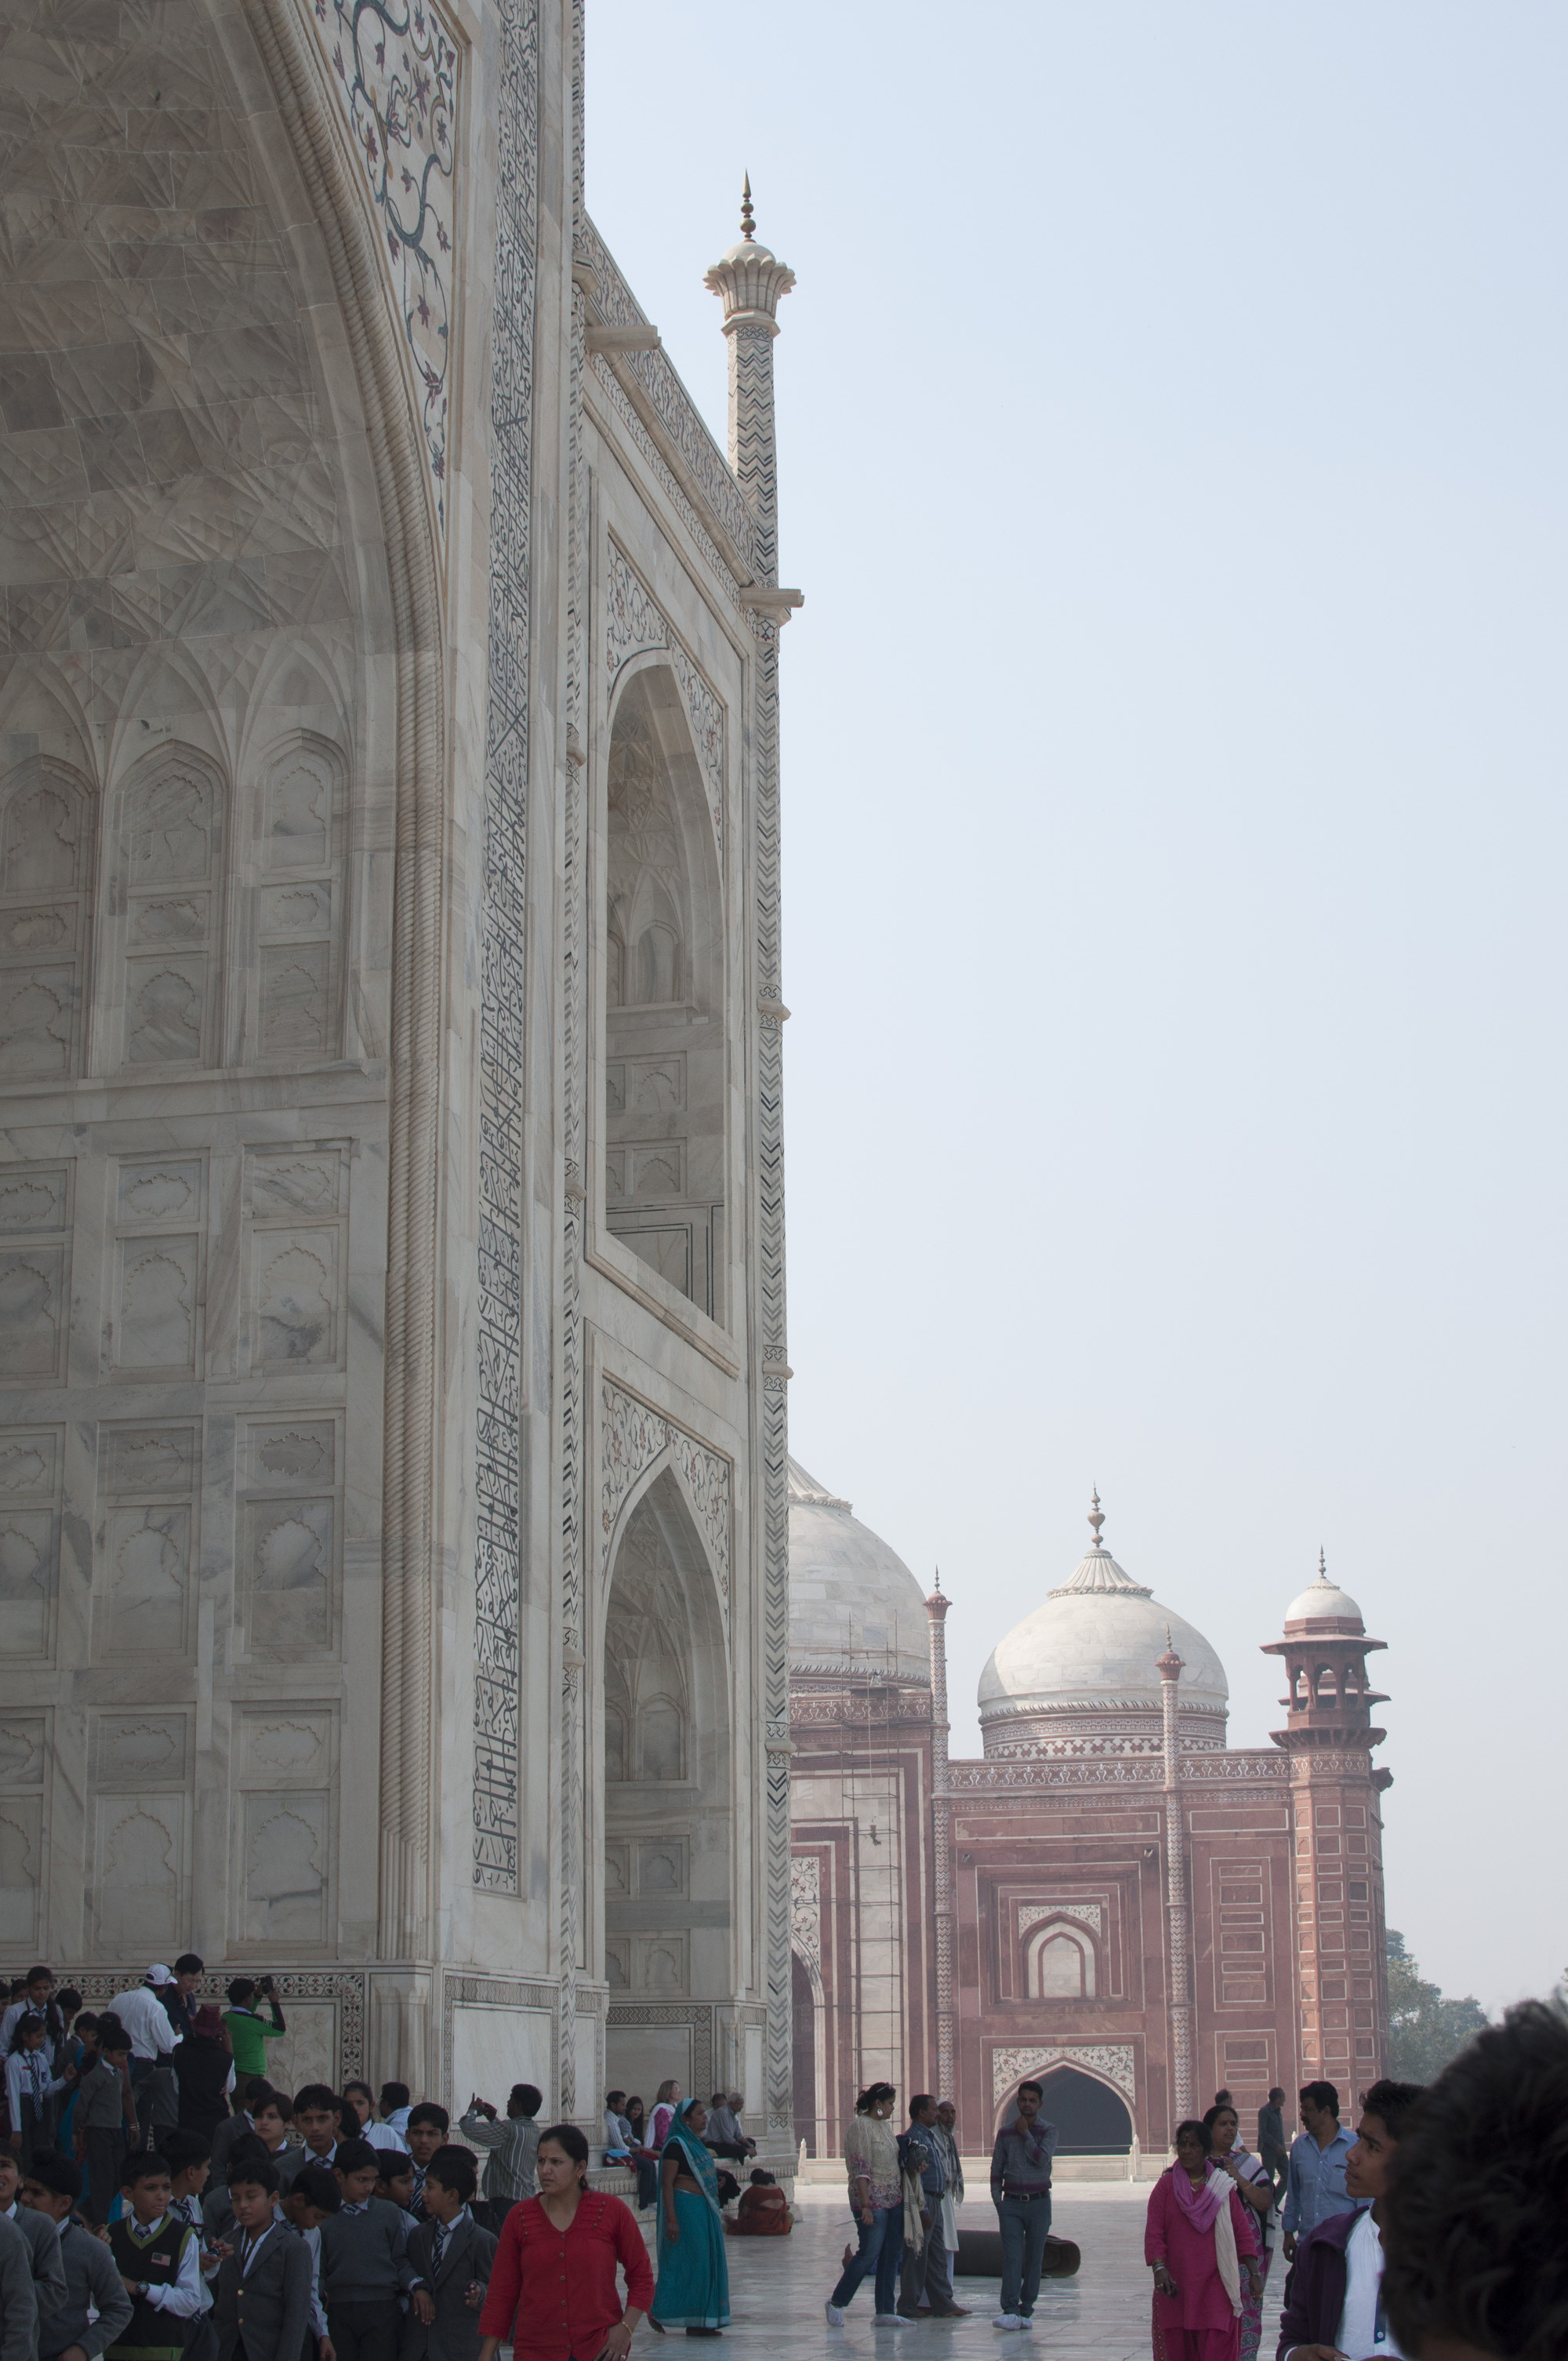 The Birch Lane team was taken by the marble lattice and reflective tiles covering the exterior of the Taj Mahal.